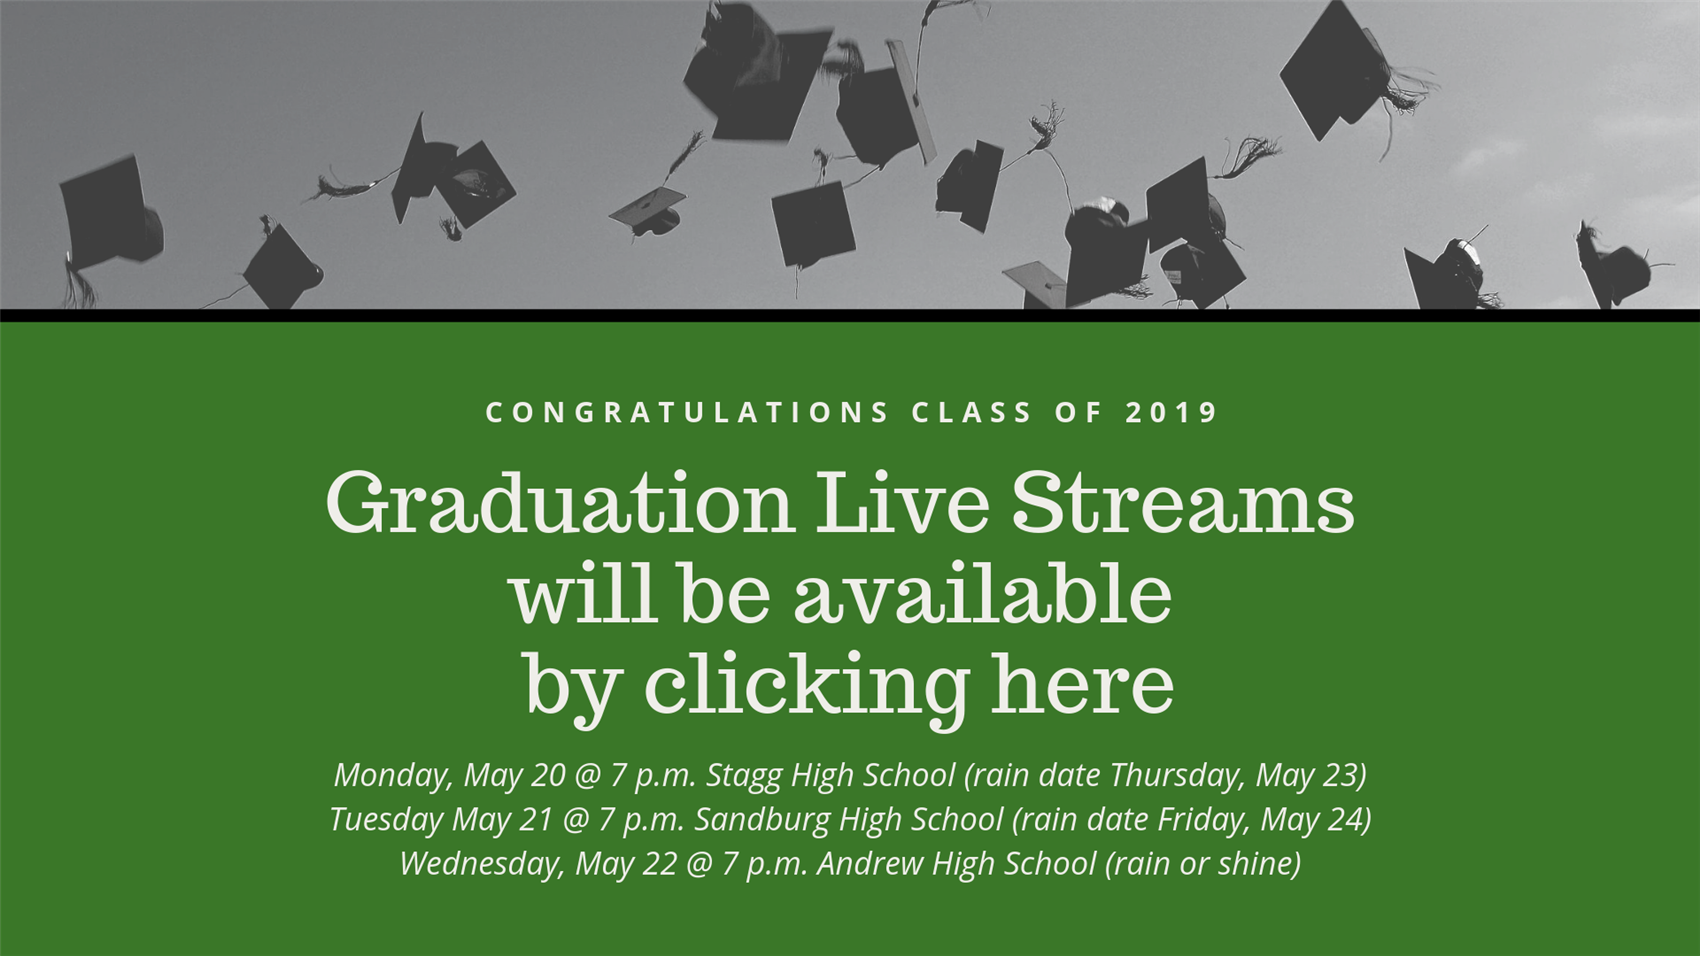 Links are here to watch the Class of 2019 graduation videos